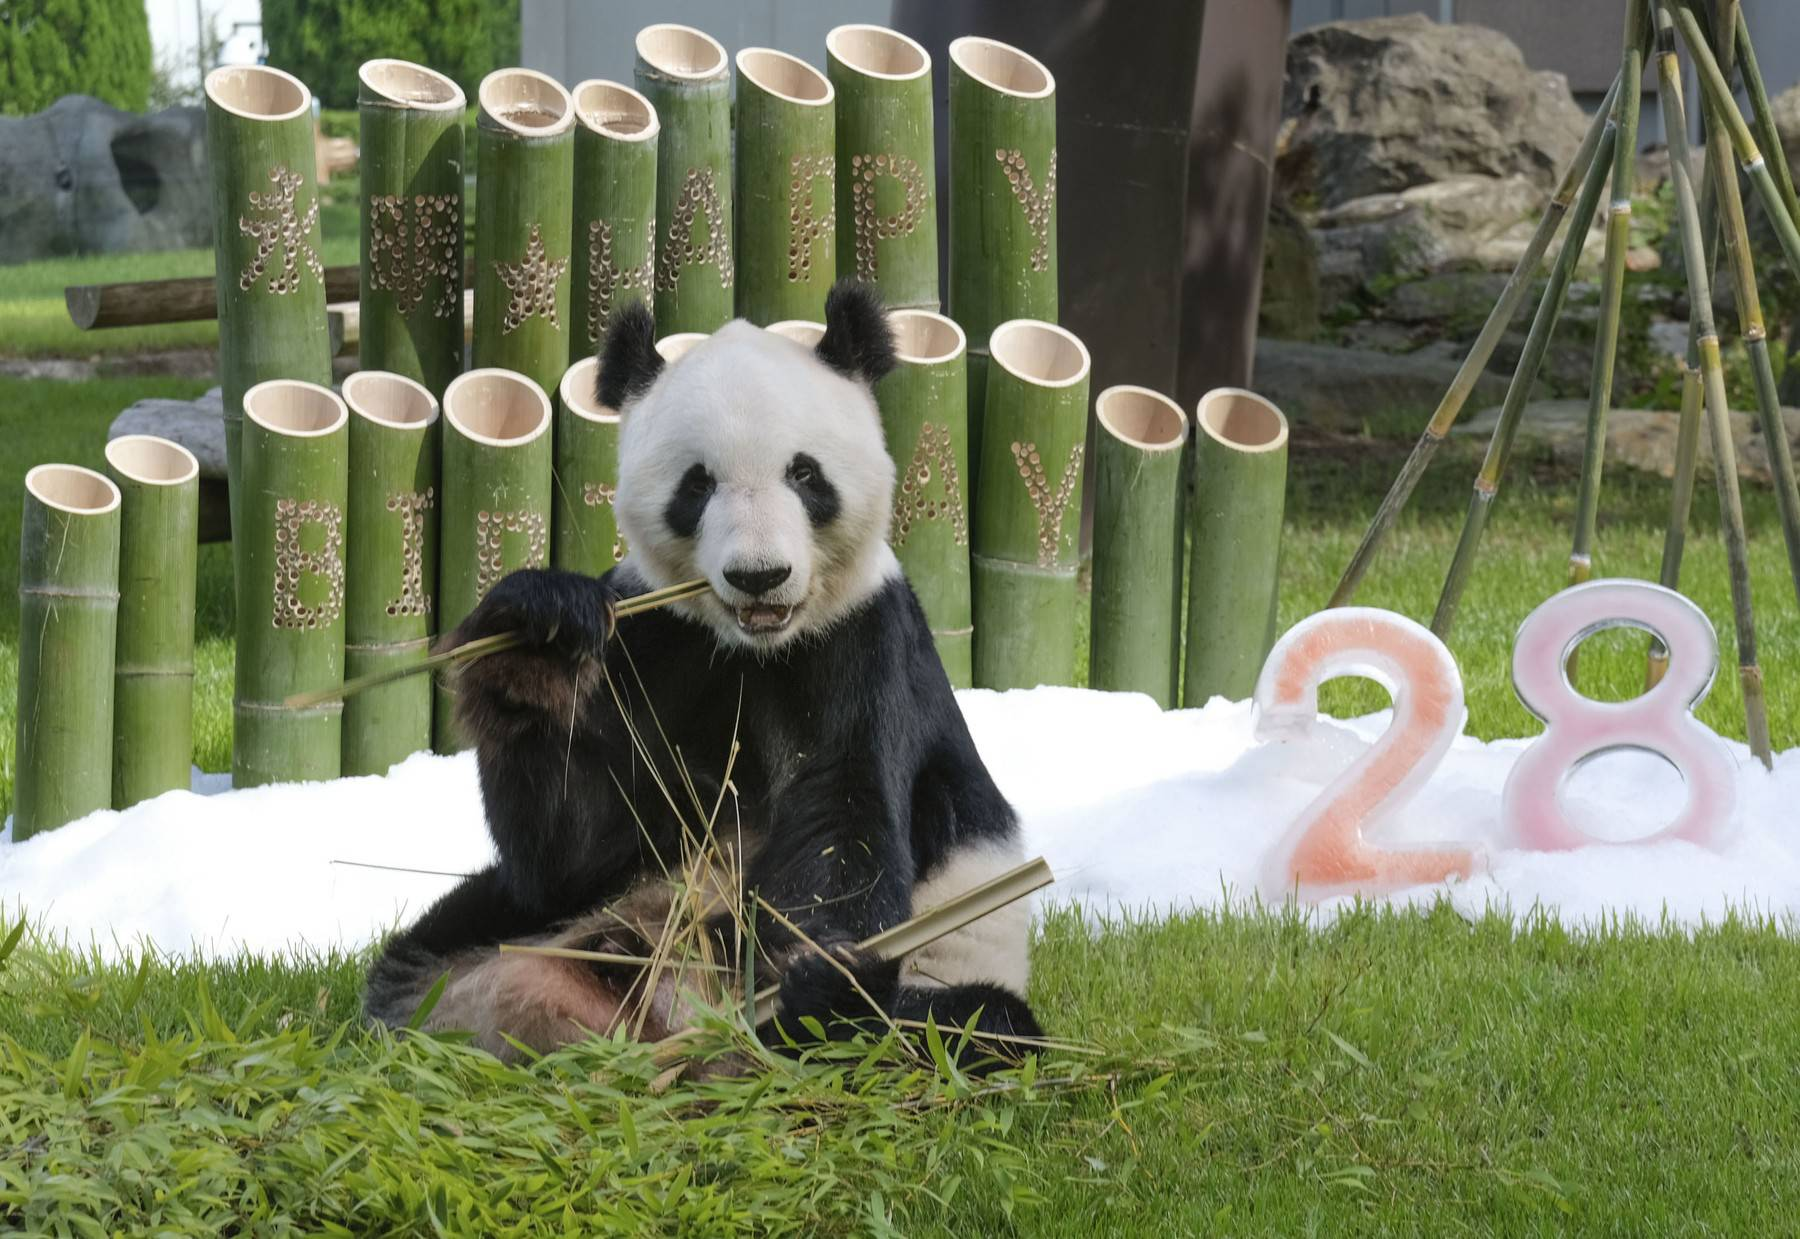 28th birthday of giant panda at western Japan zoo